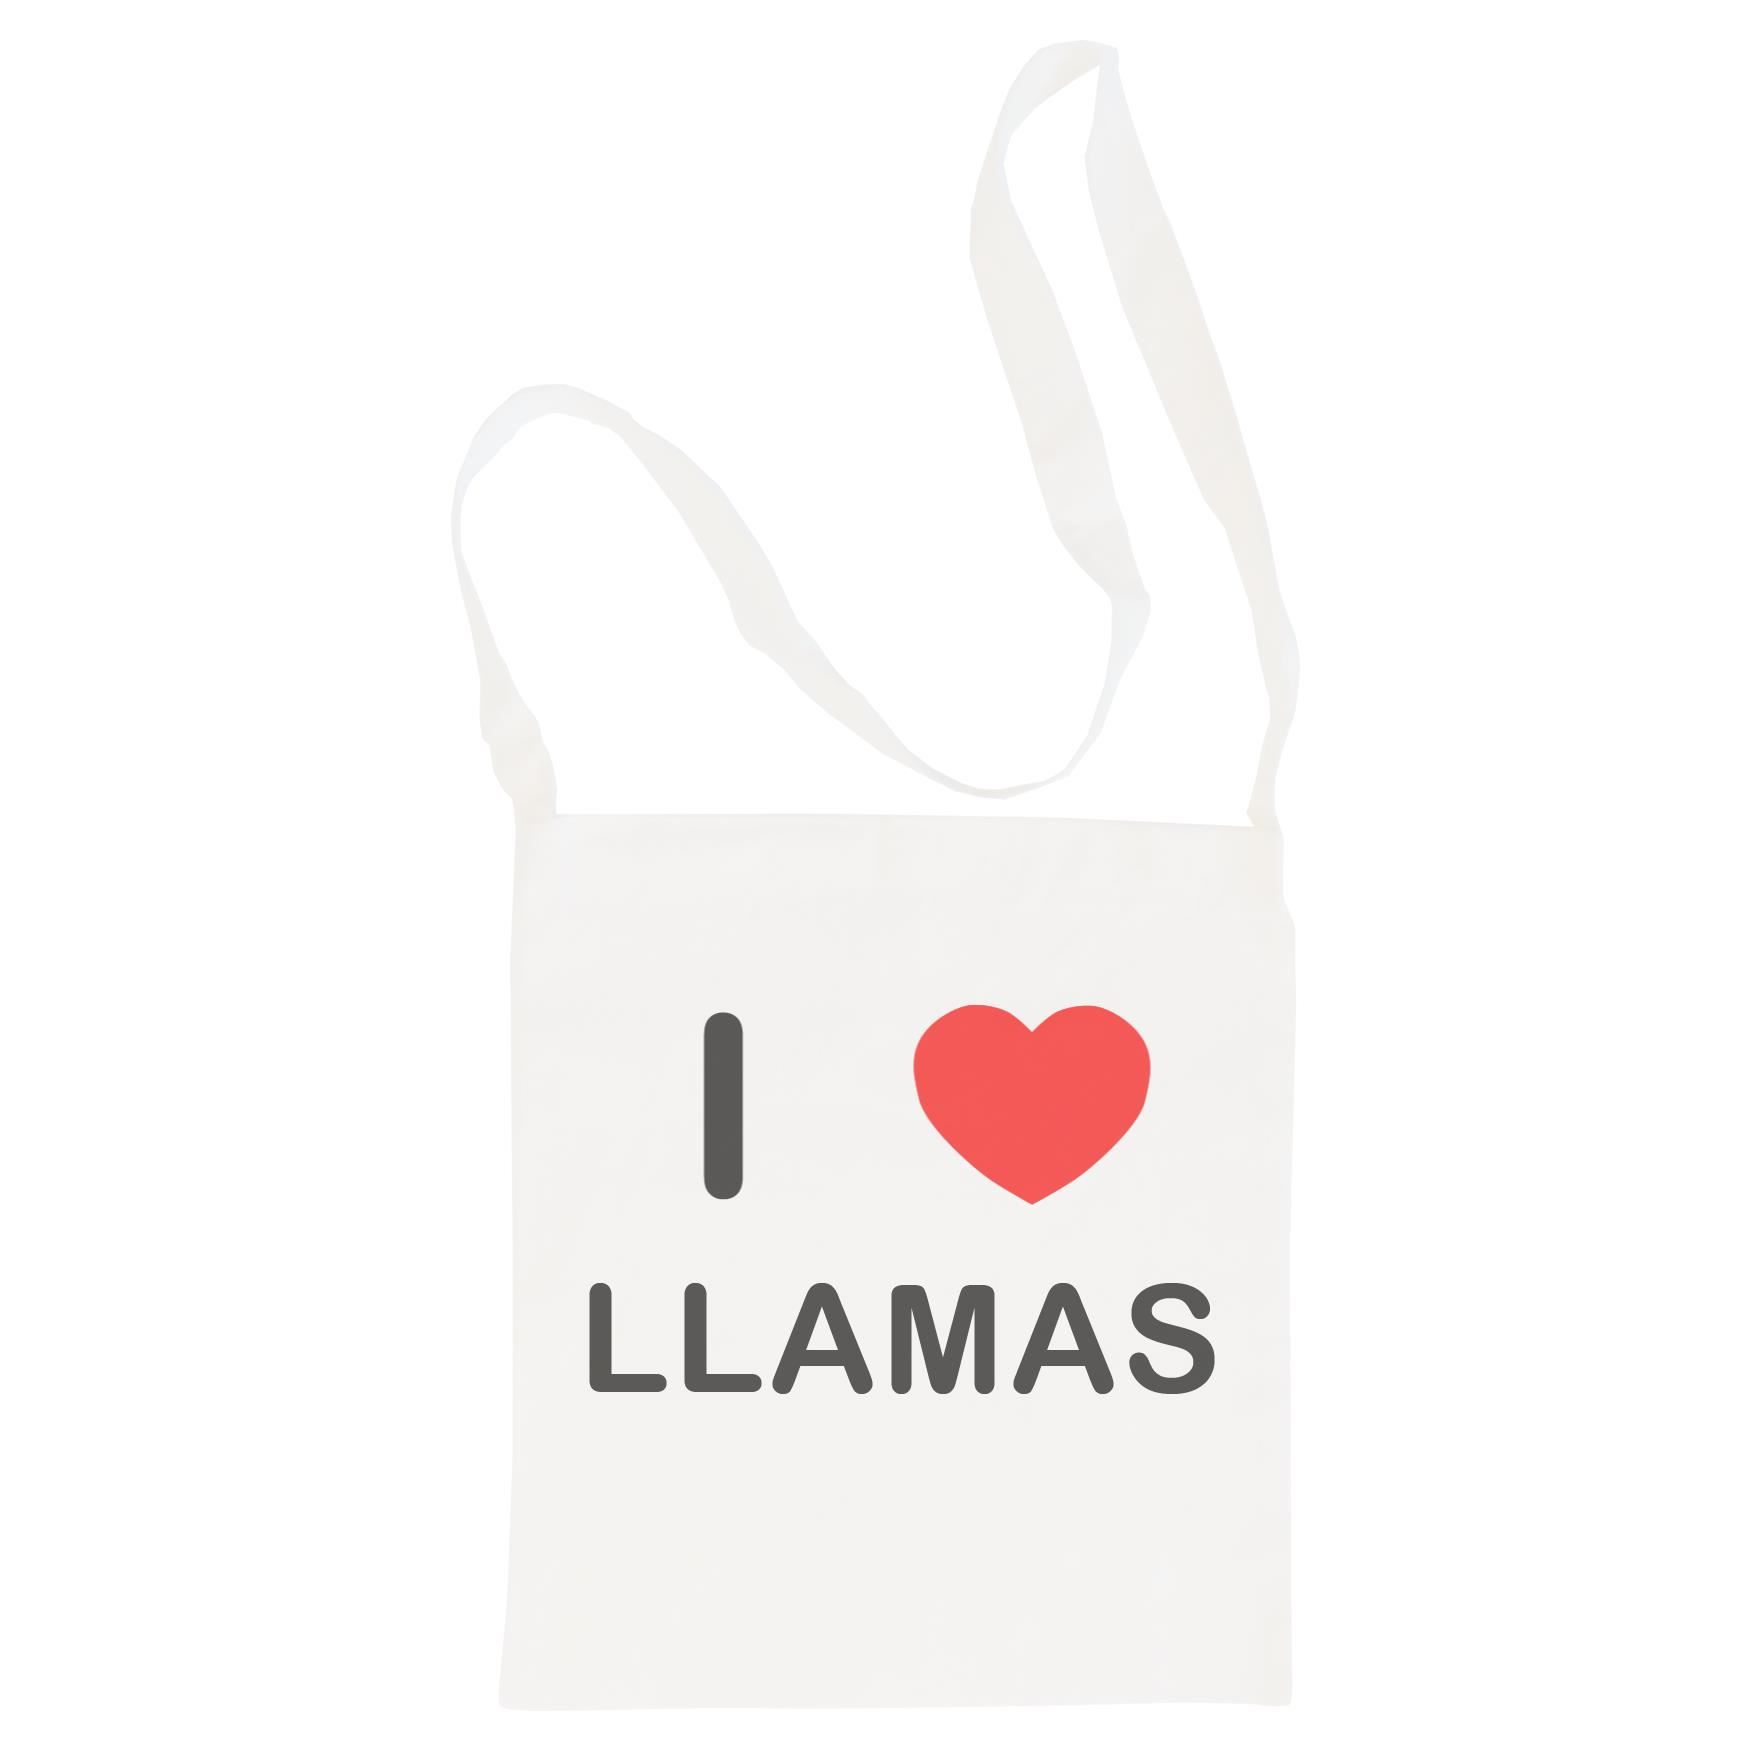 I Love Llamas - Cotton Bag | Size choice Tote, Shopper or Sling